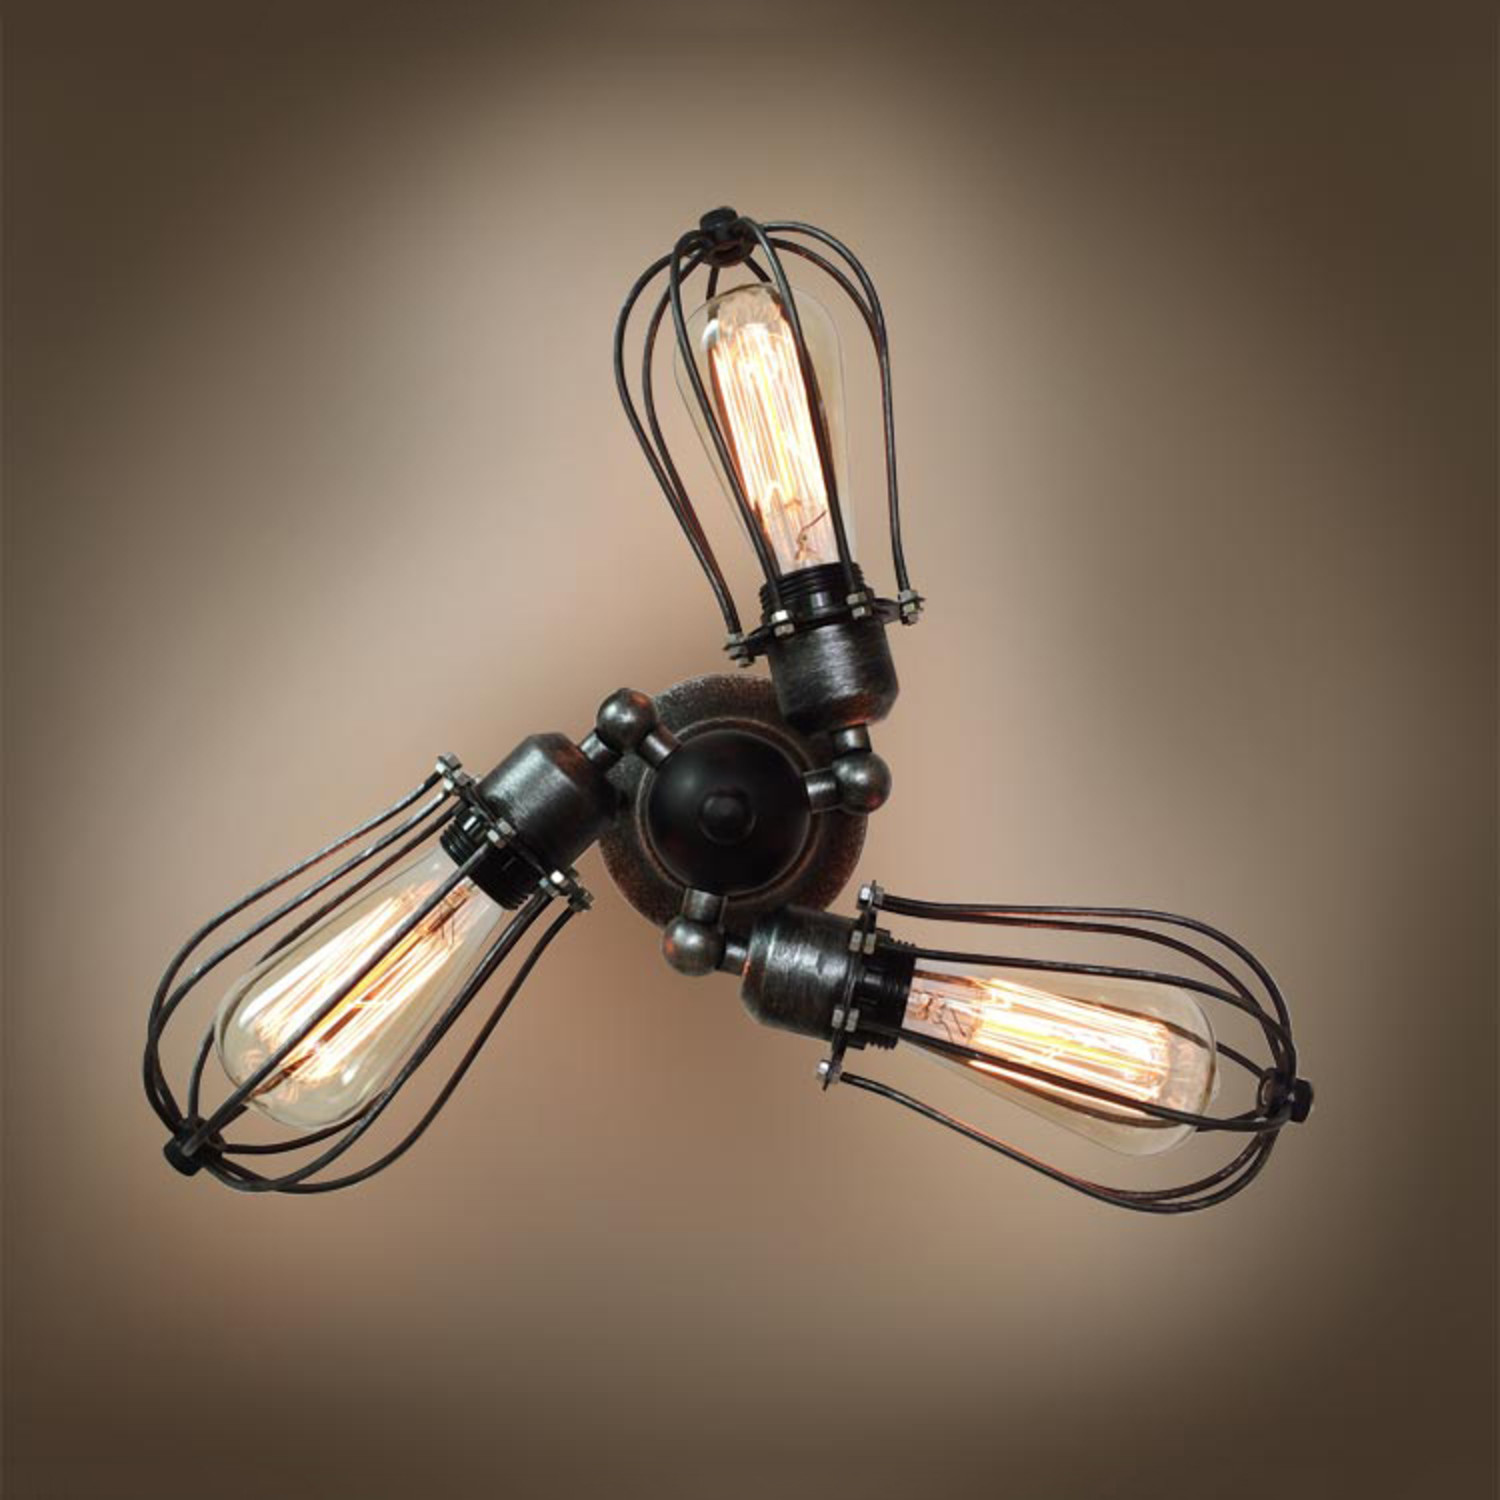 3 armed transformable arm ceiling light westmenlights touch of modern. Black Bedroom Furniture Sets. Home Design Ideas